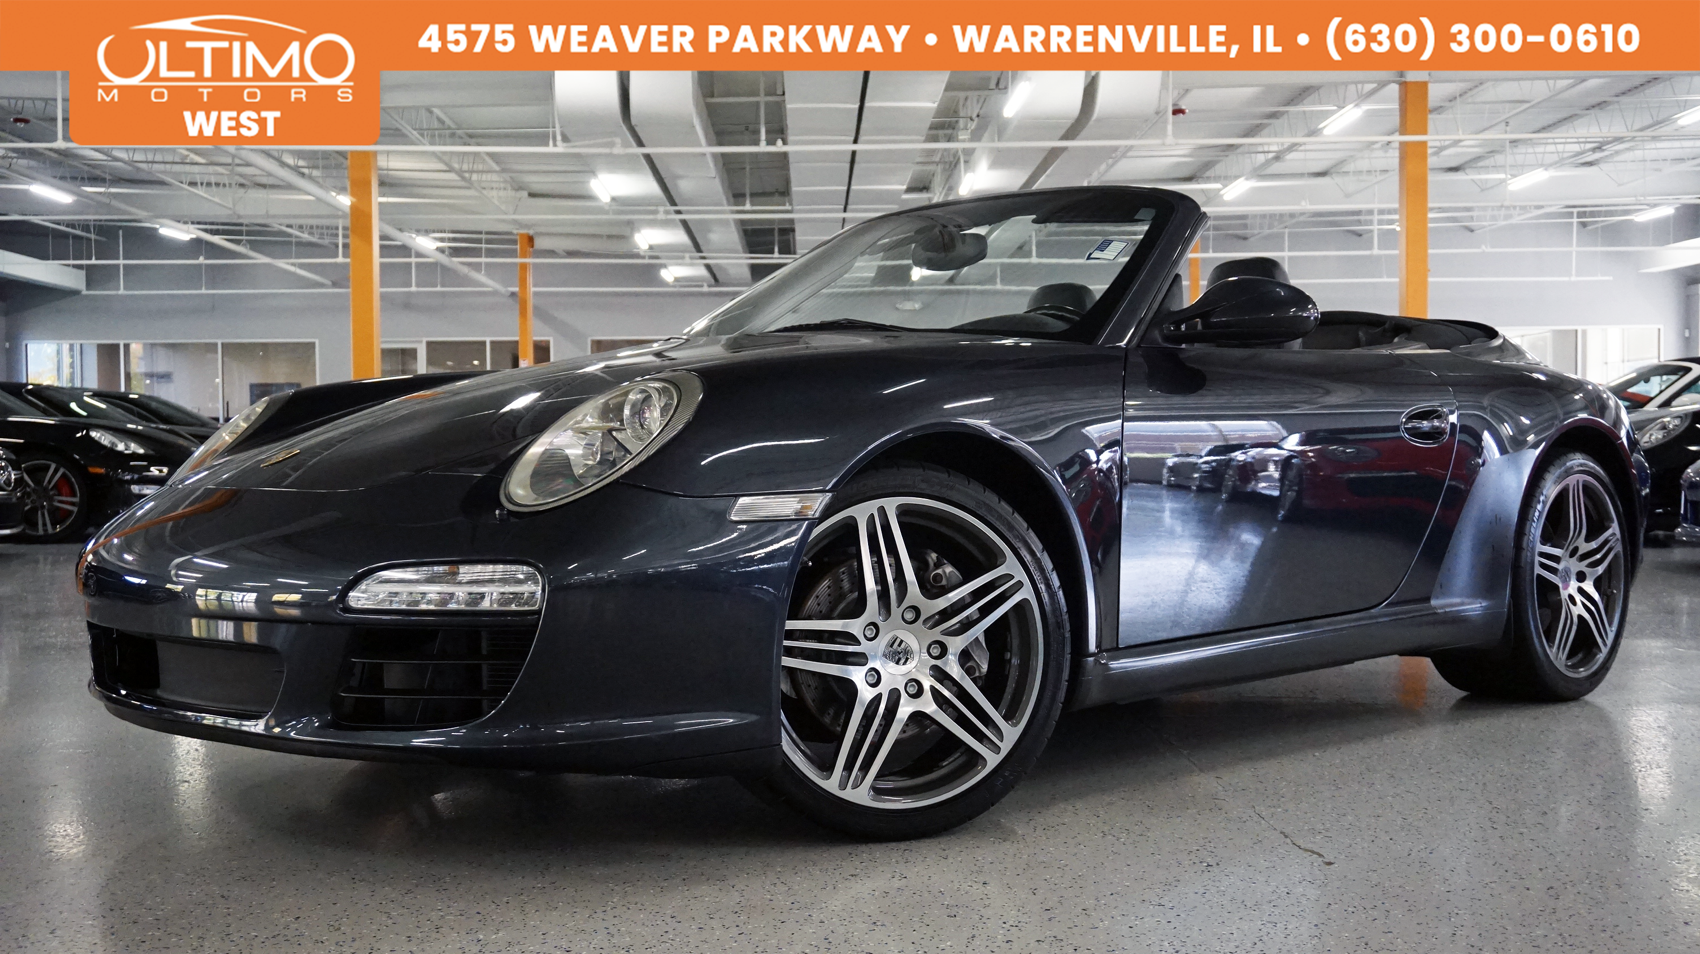 Pre-Owned 2009 Porsche 911 Vented Seats, Heated Steering Wheel, Msrp $104,245